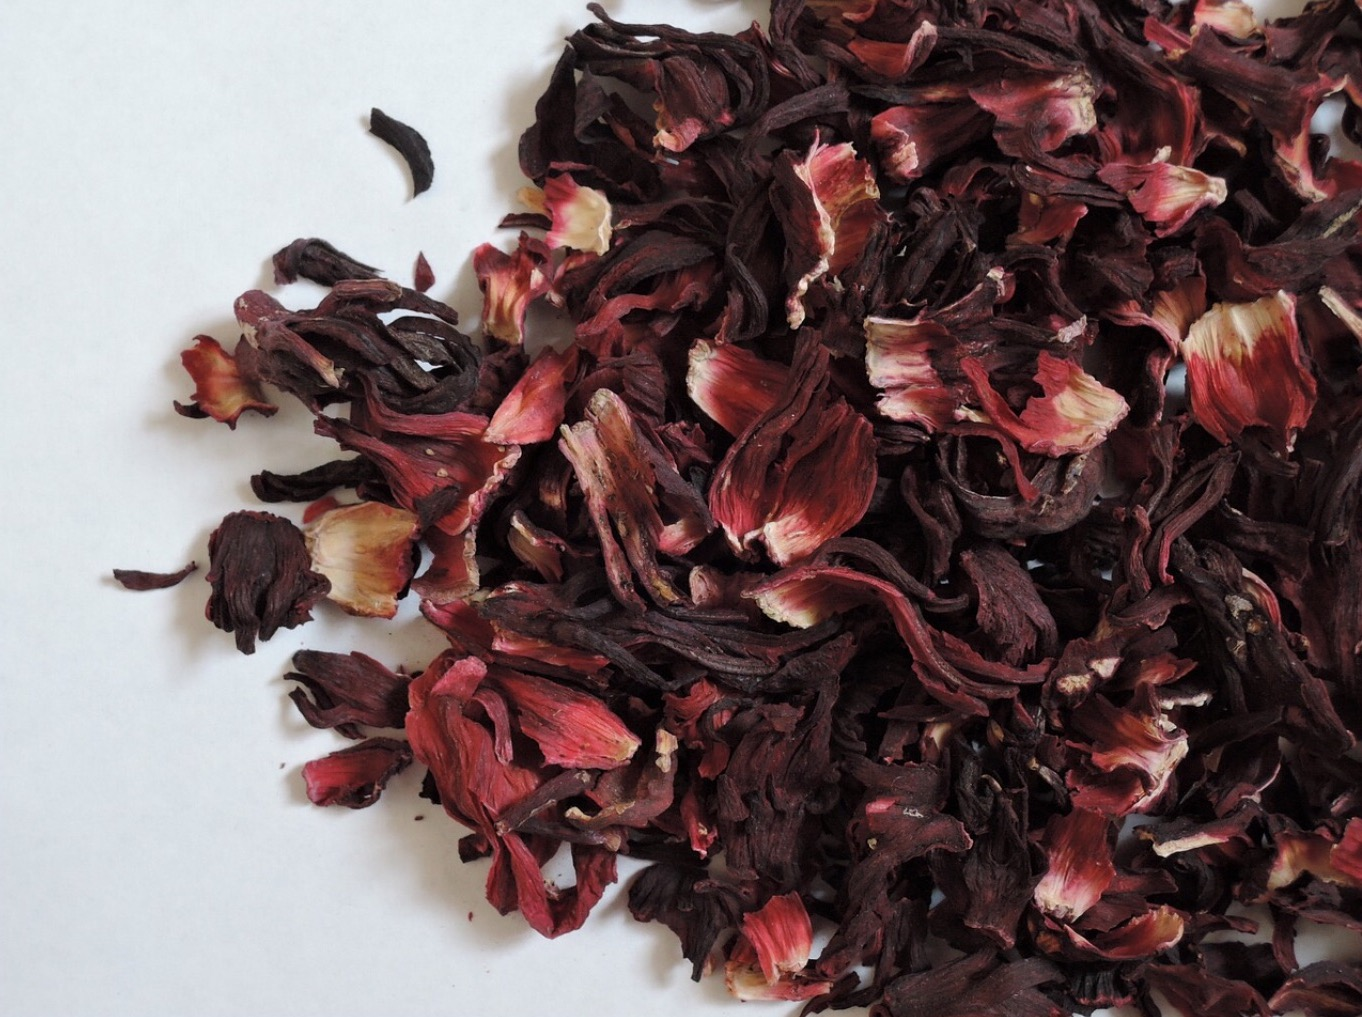 Hibiscus tea leaves